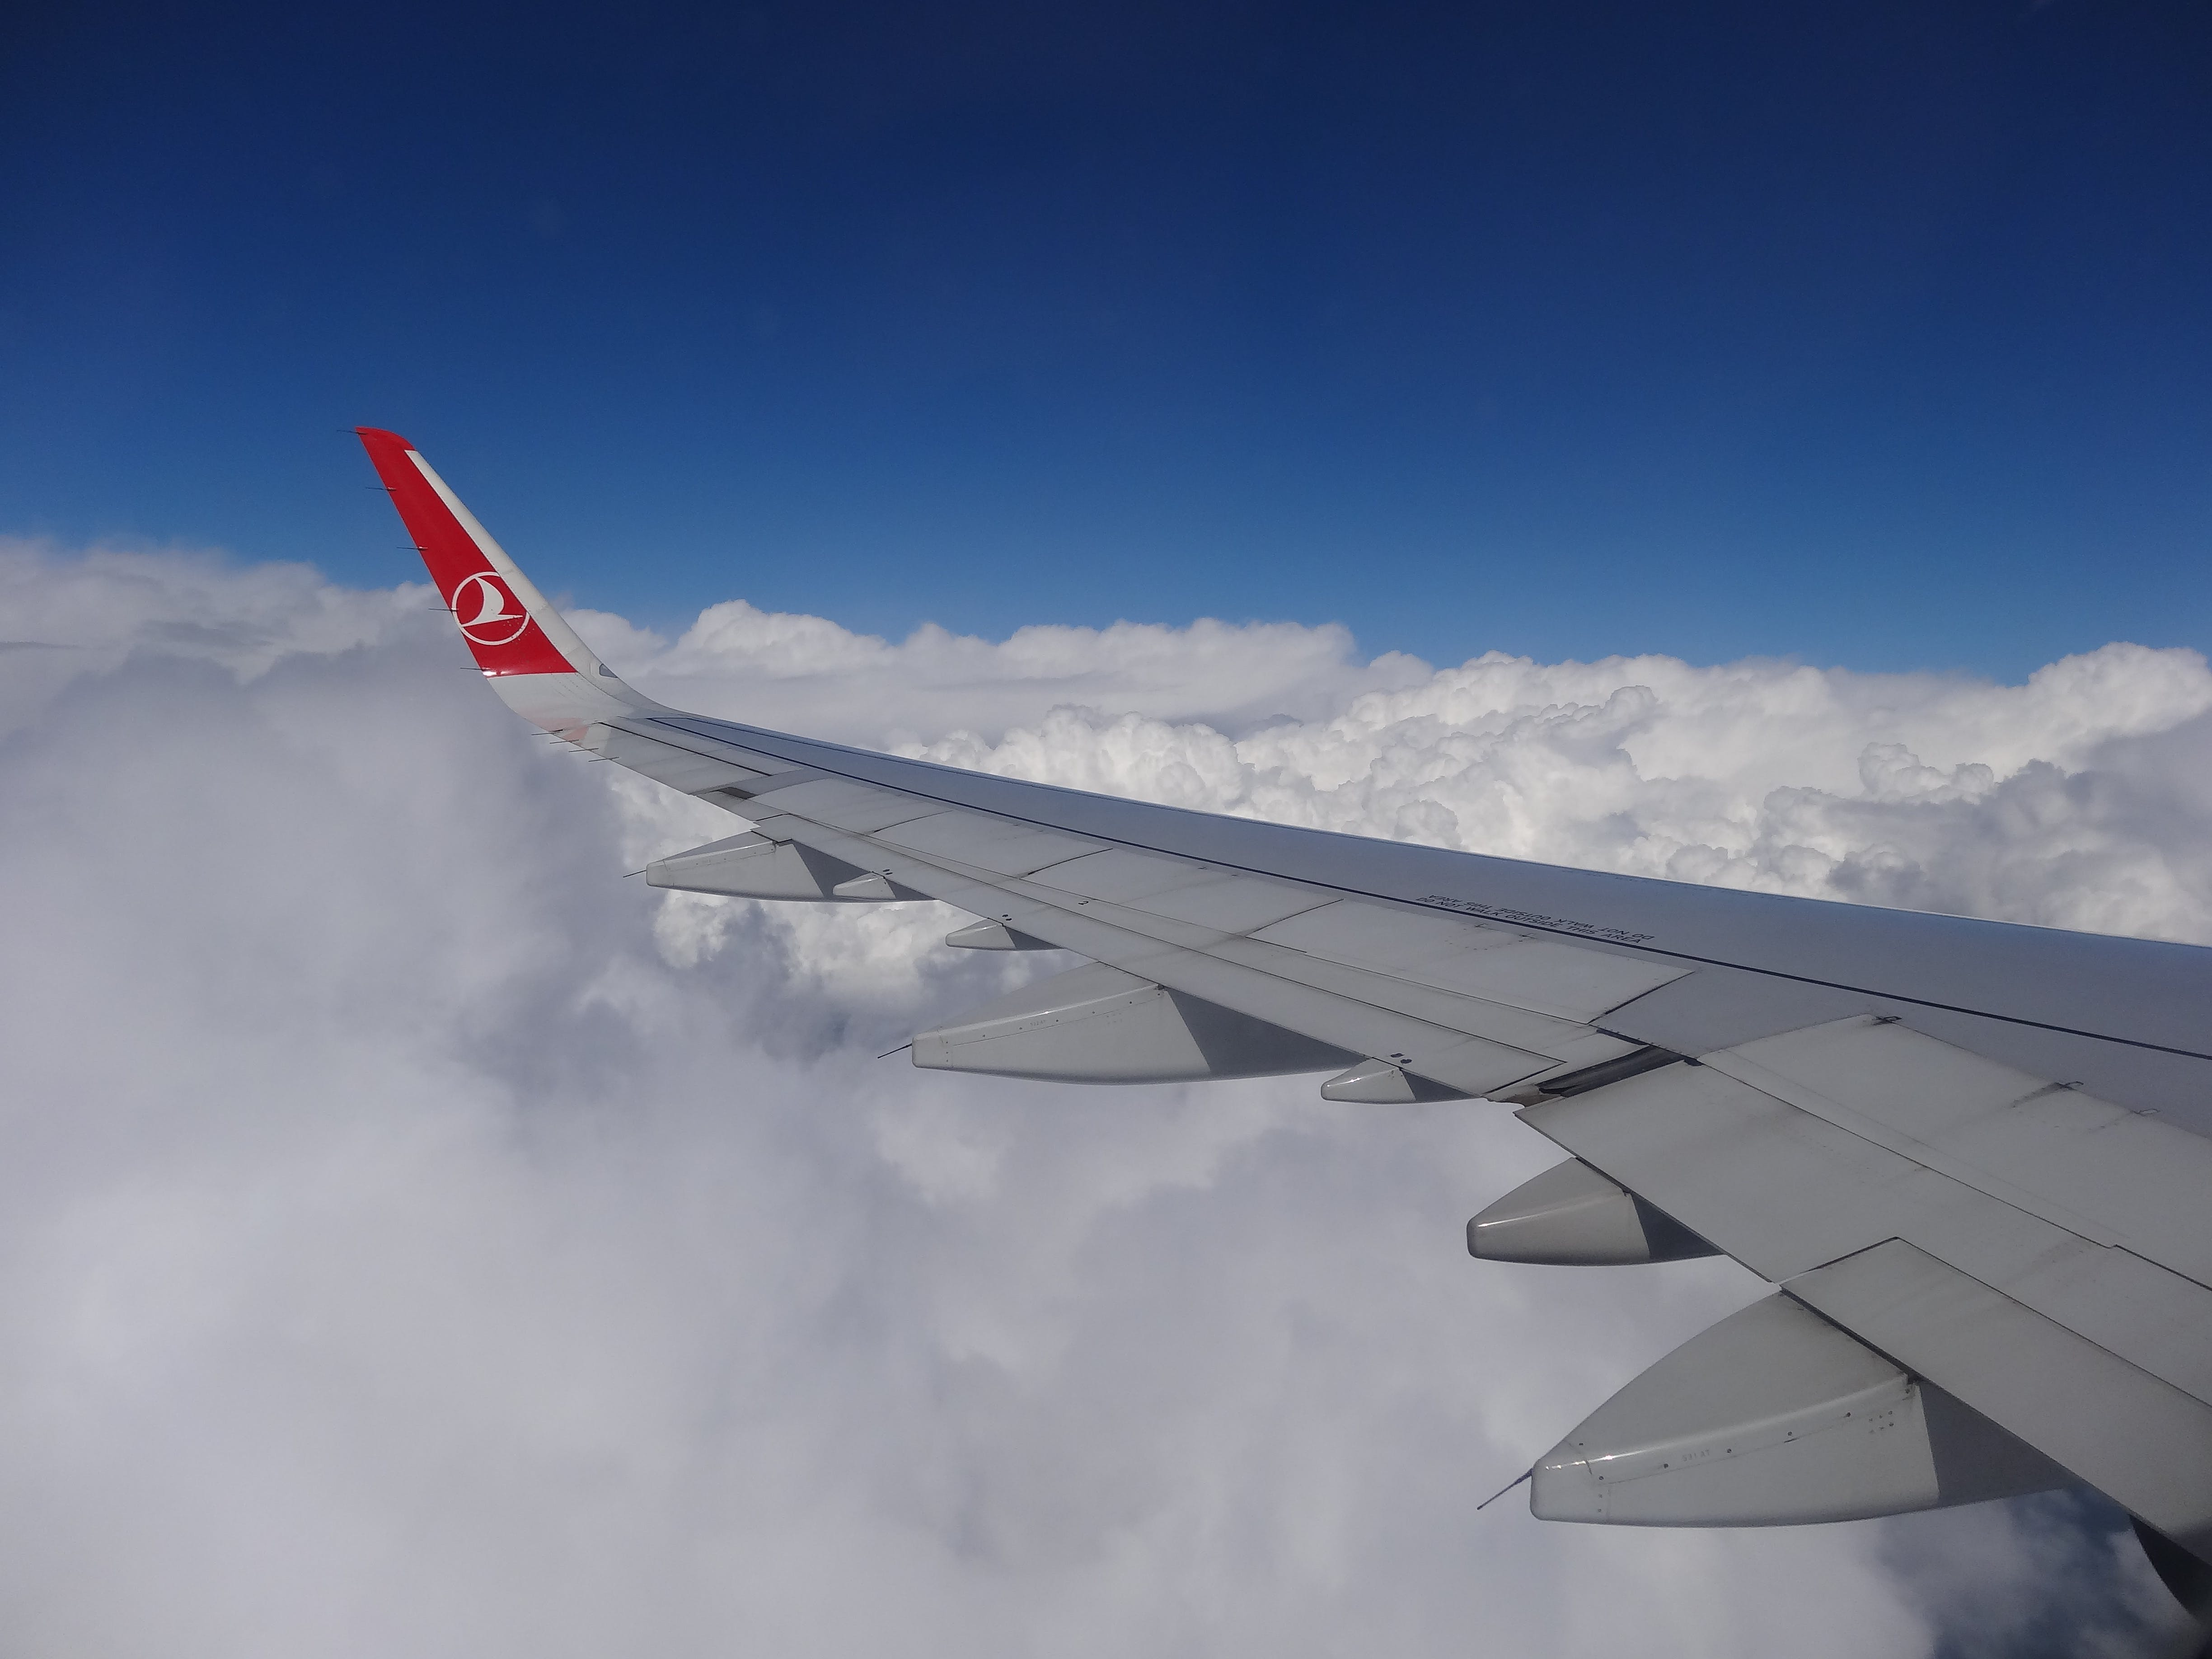 Free stock photo of #notsponsored, airlines, airplane, cloud